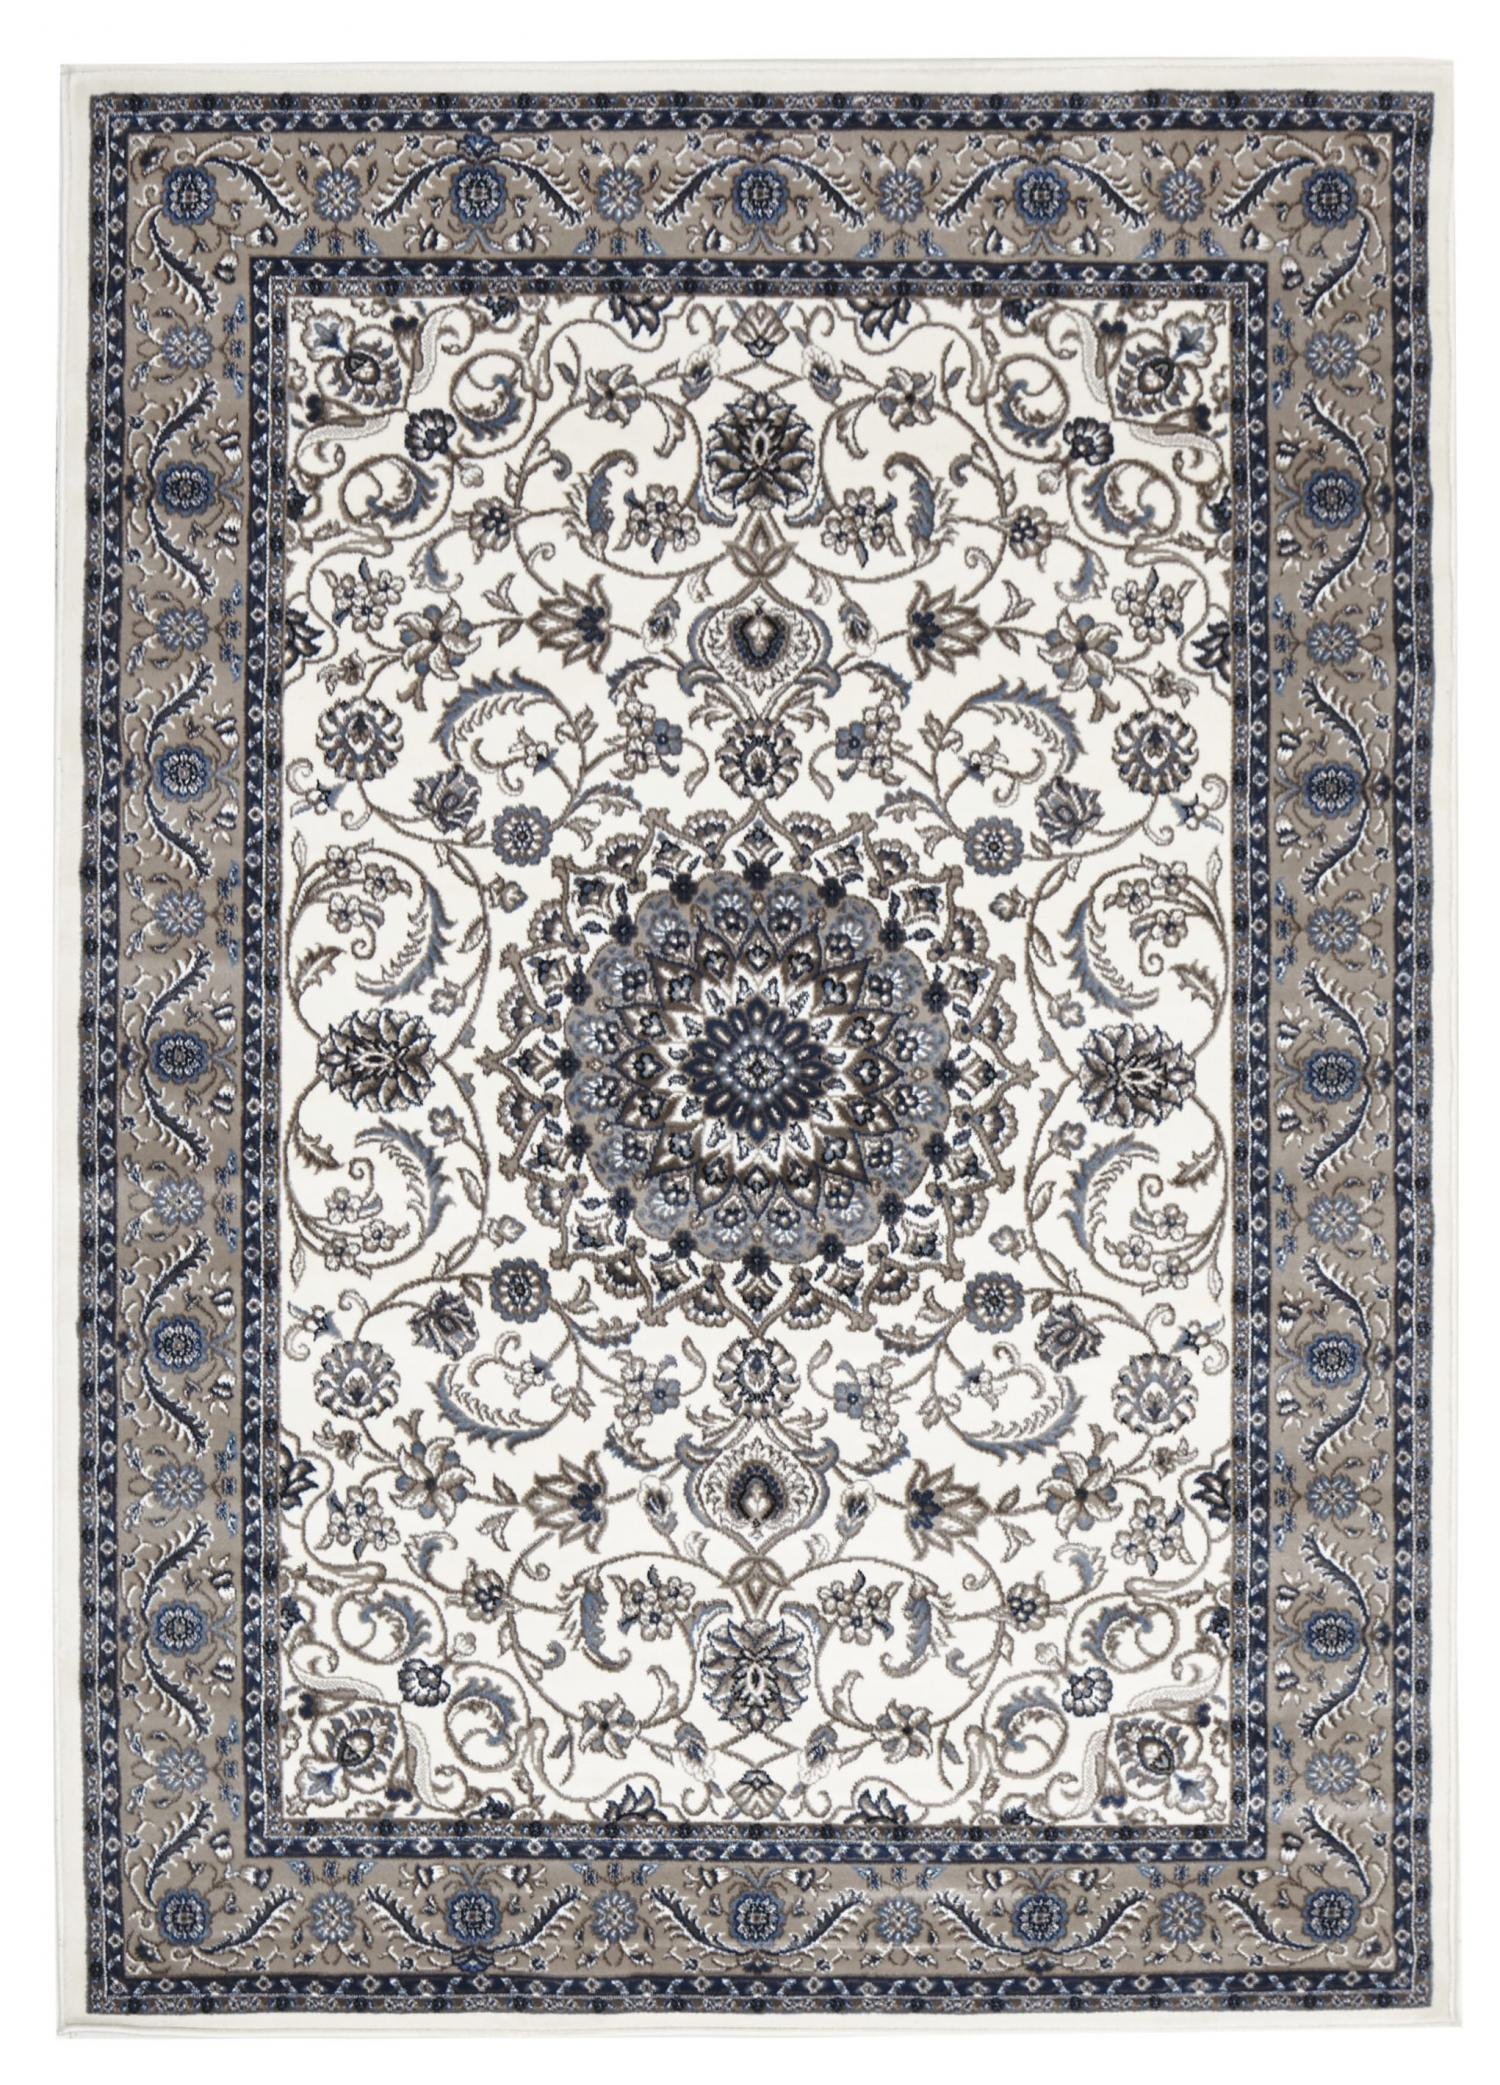 sydney-rugs-perth-stans-traditional-white-blue-beige